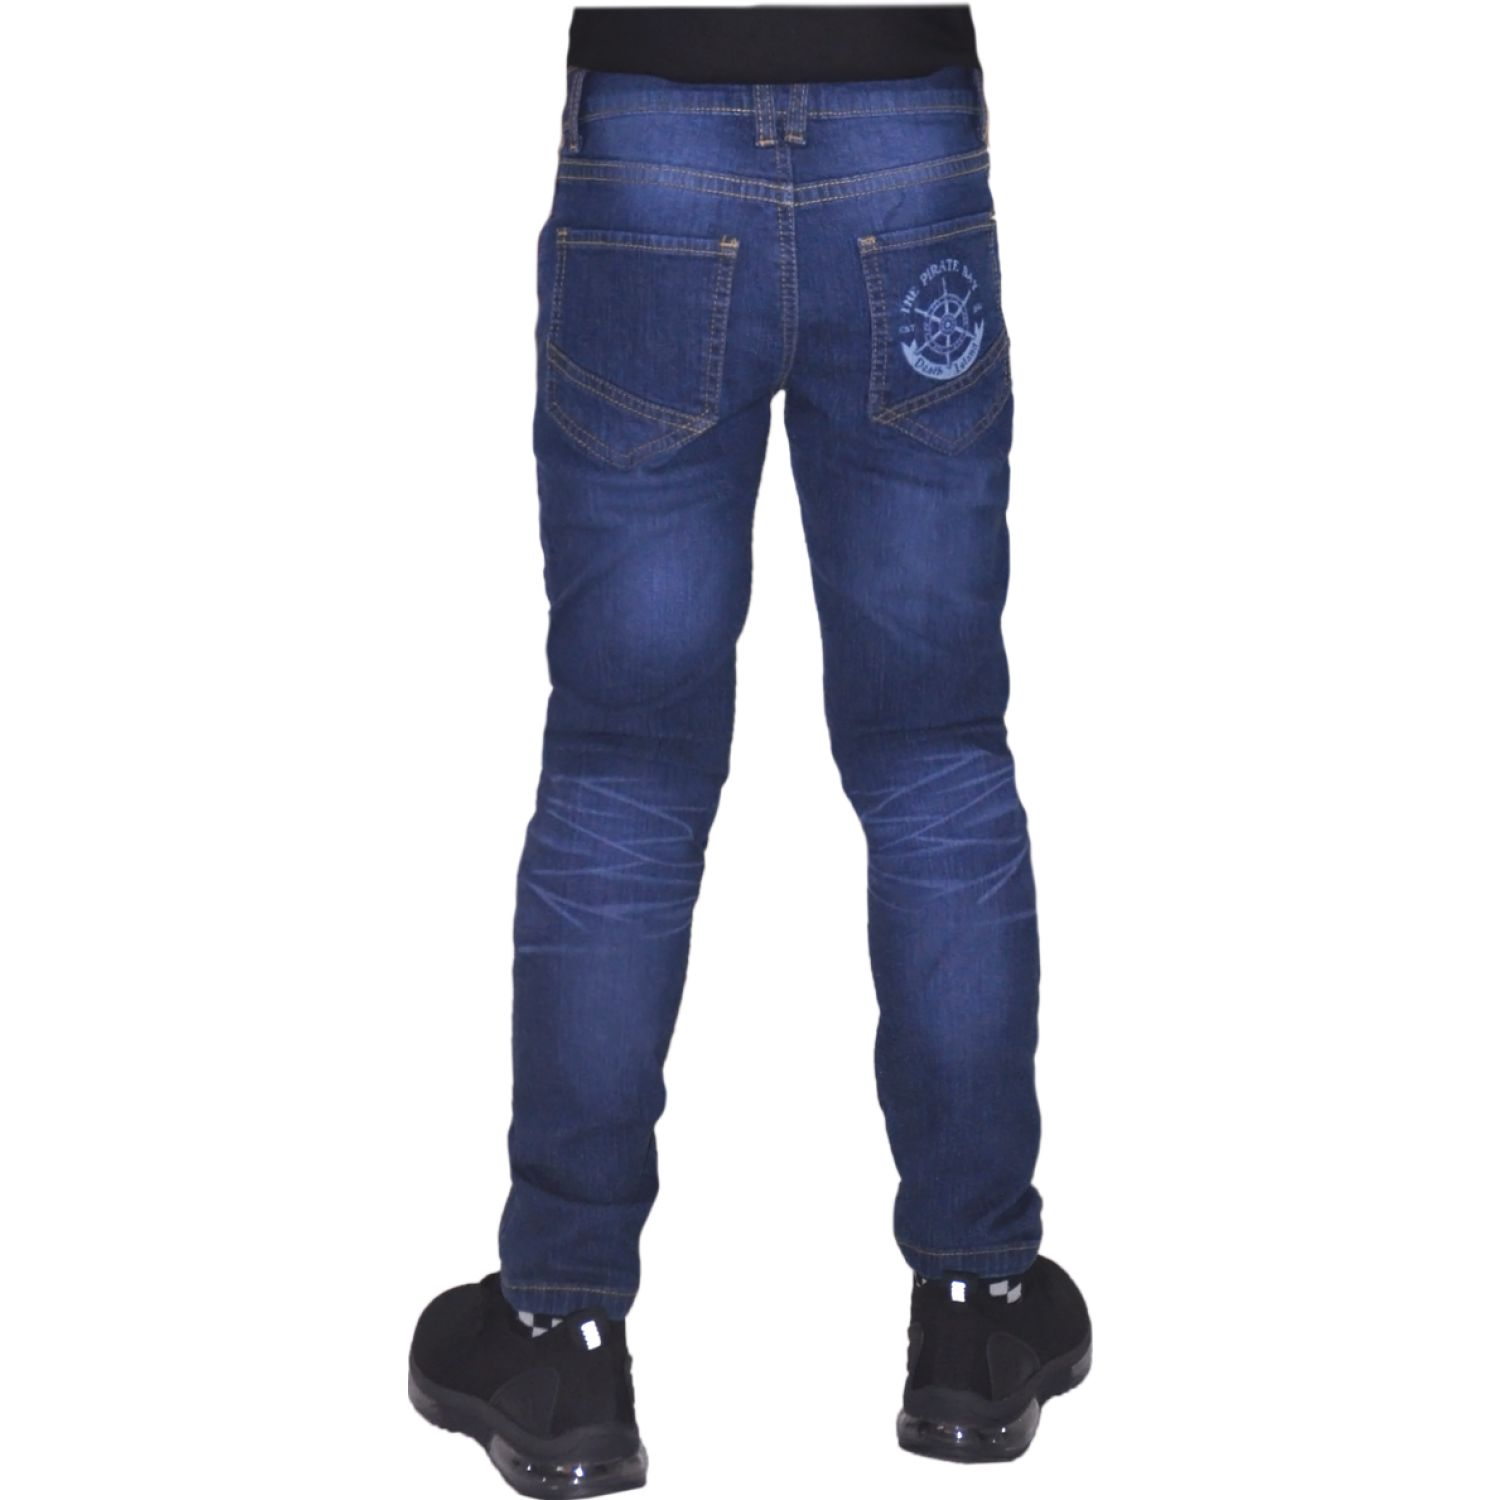 COTTONS JEANS Zaid Azul Pantalones